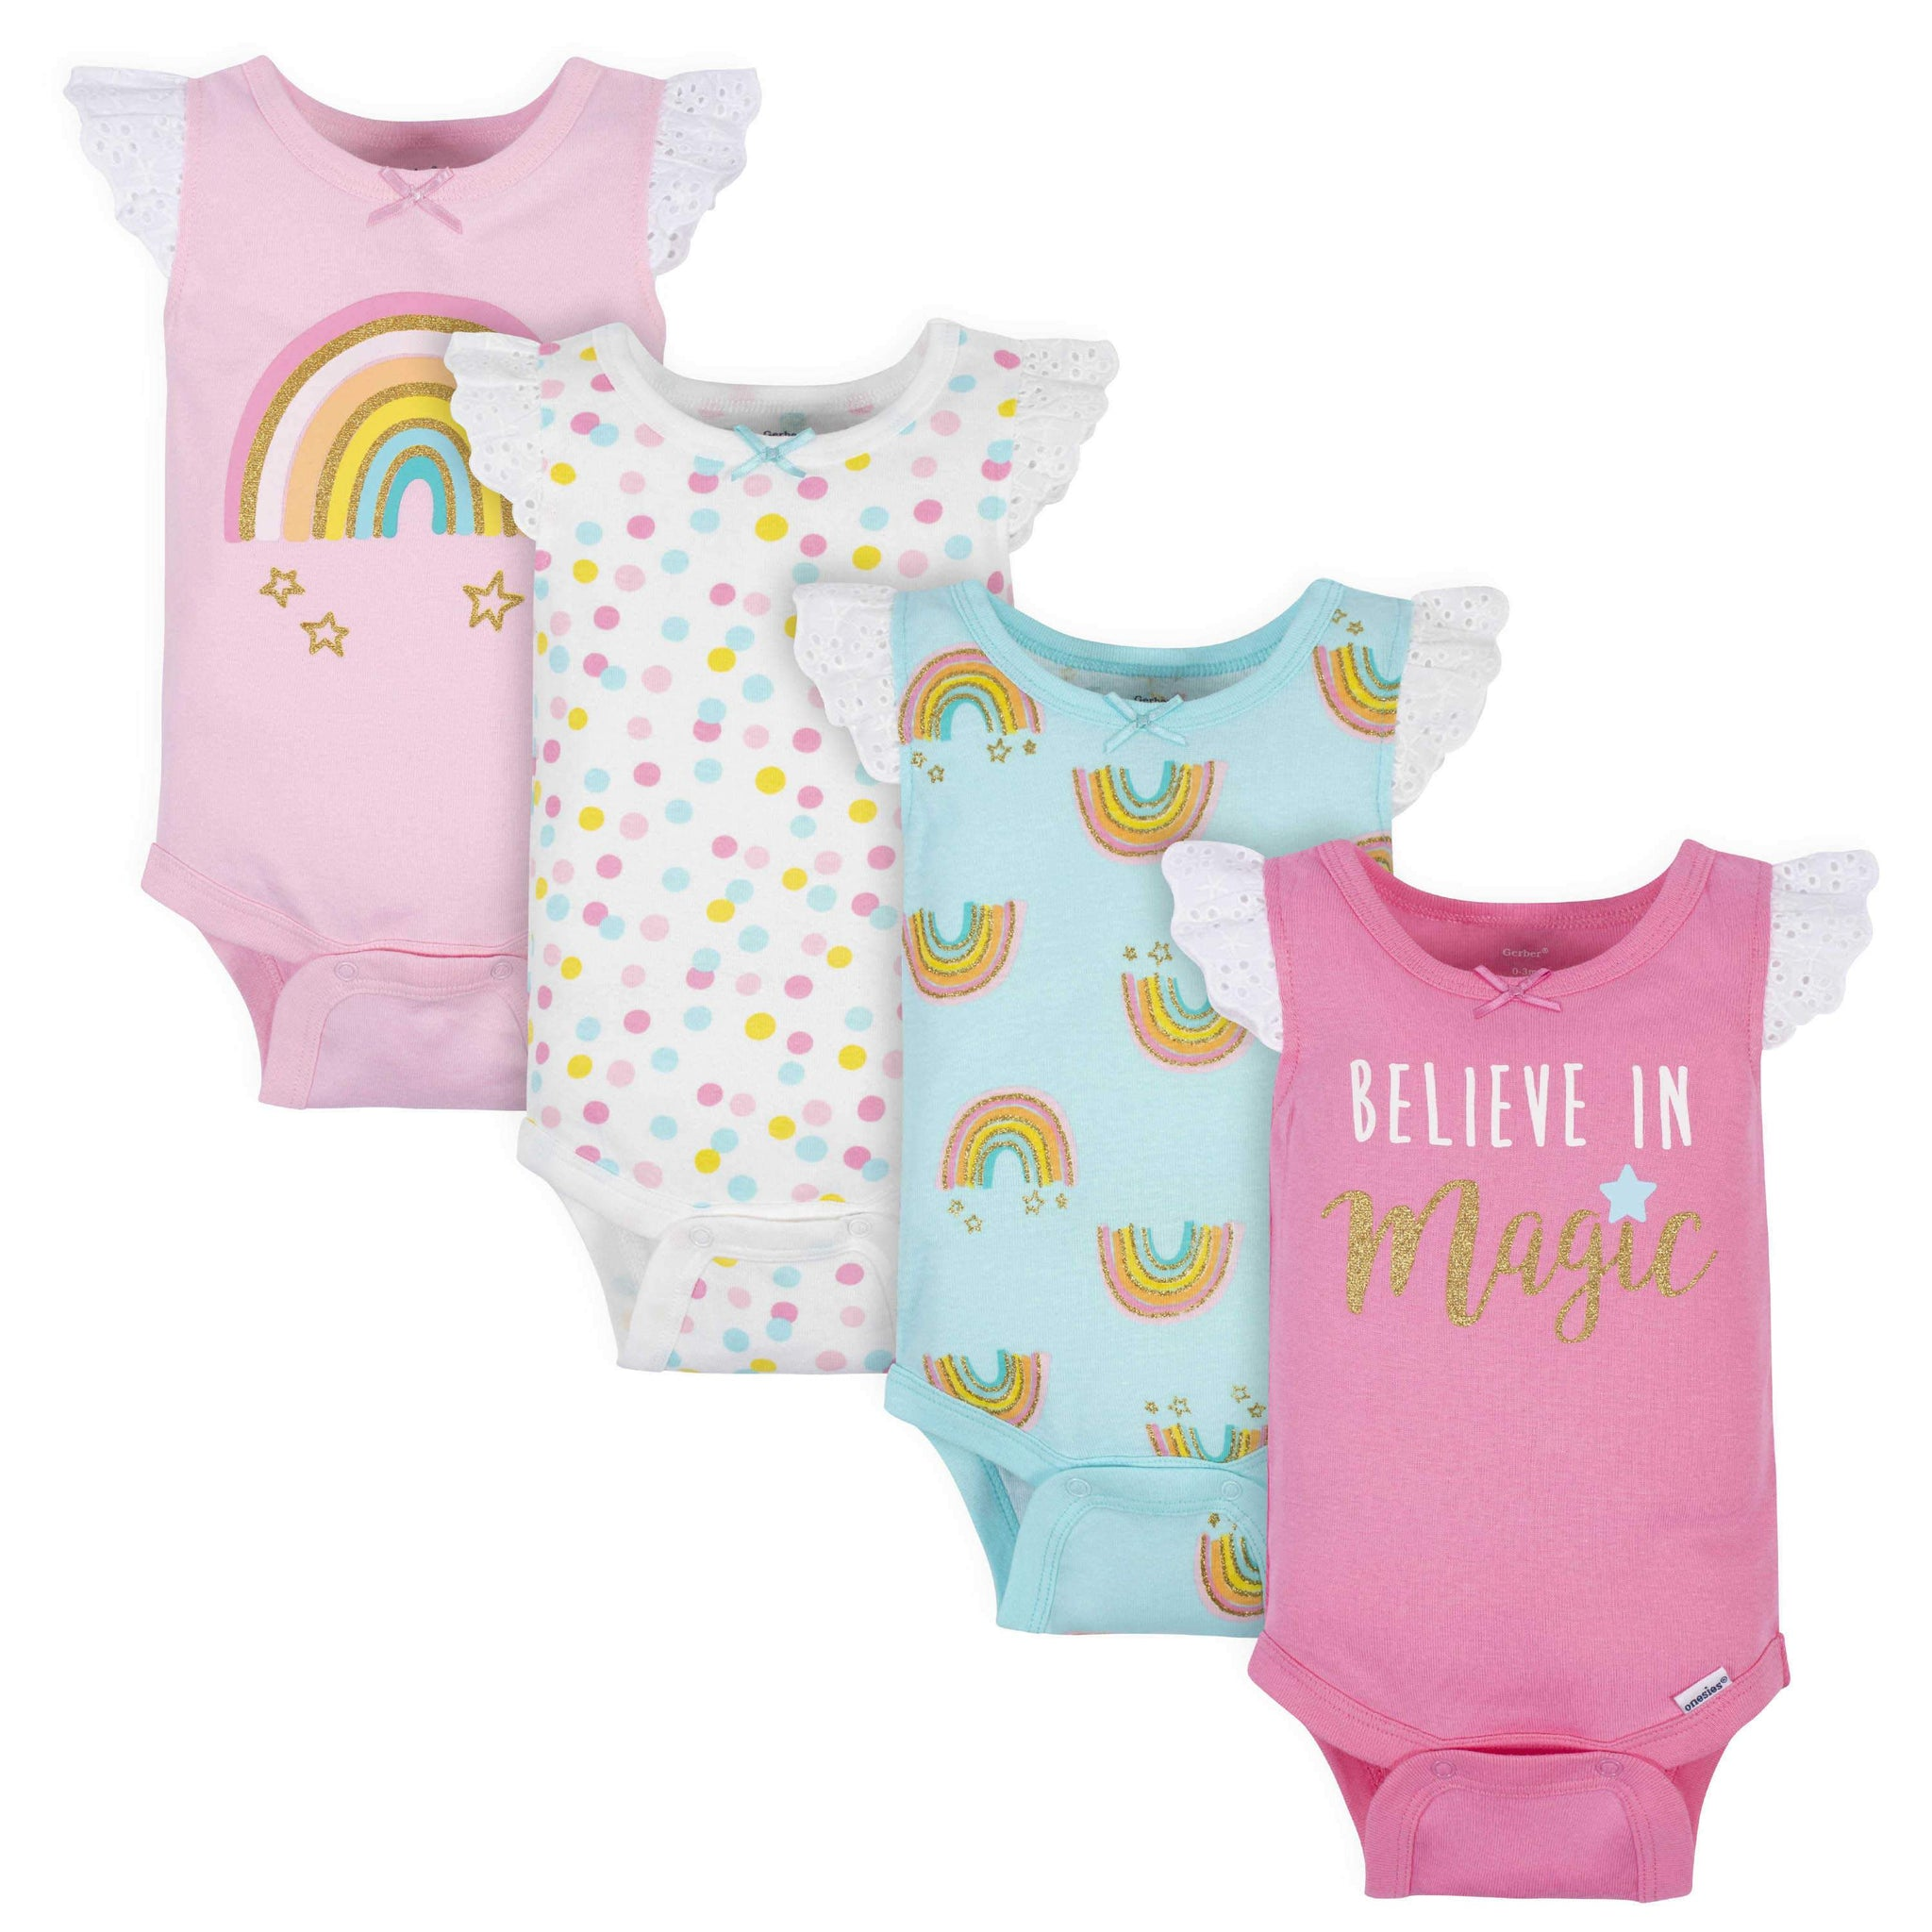 4-Pack Baby Girls Rainbow Tank Onesies Bodysuits